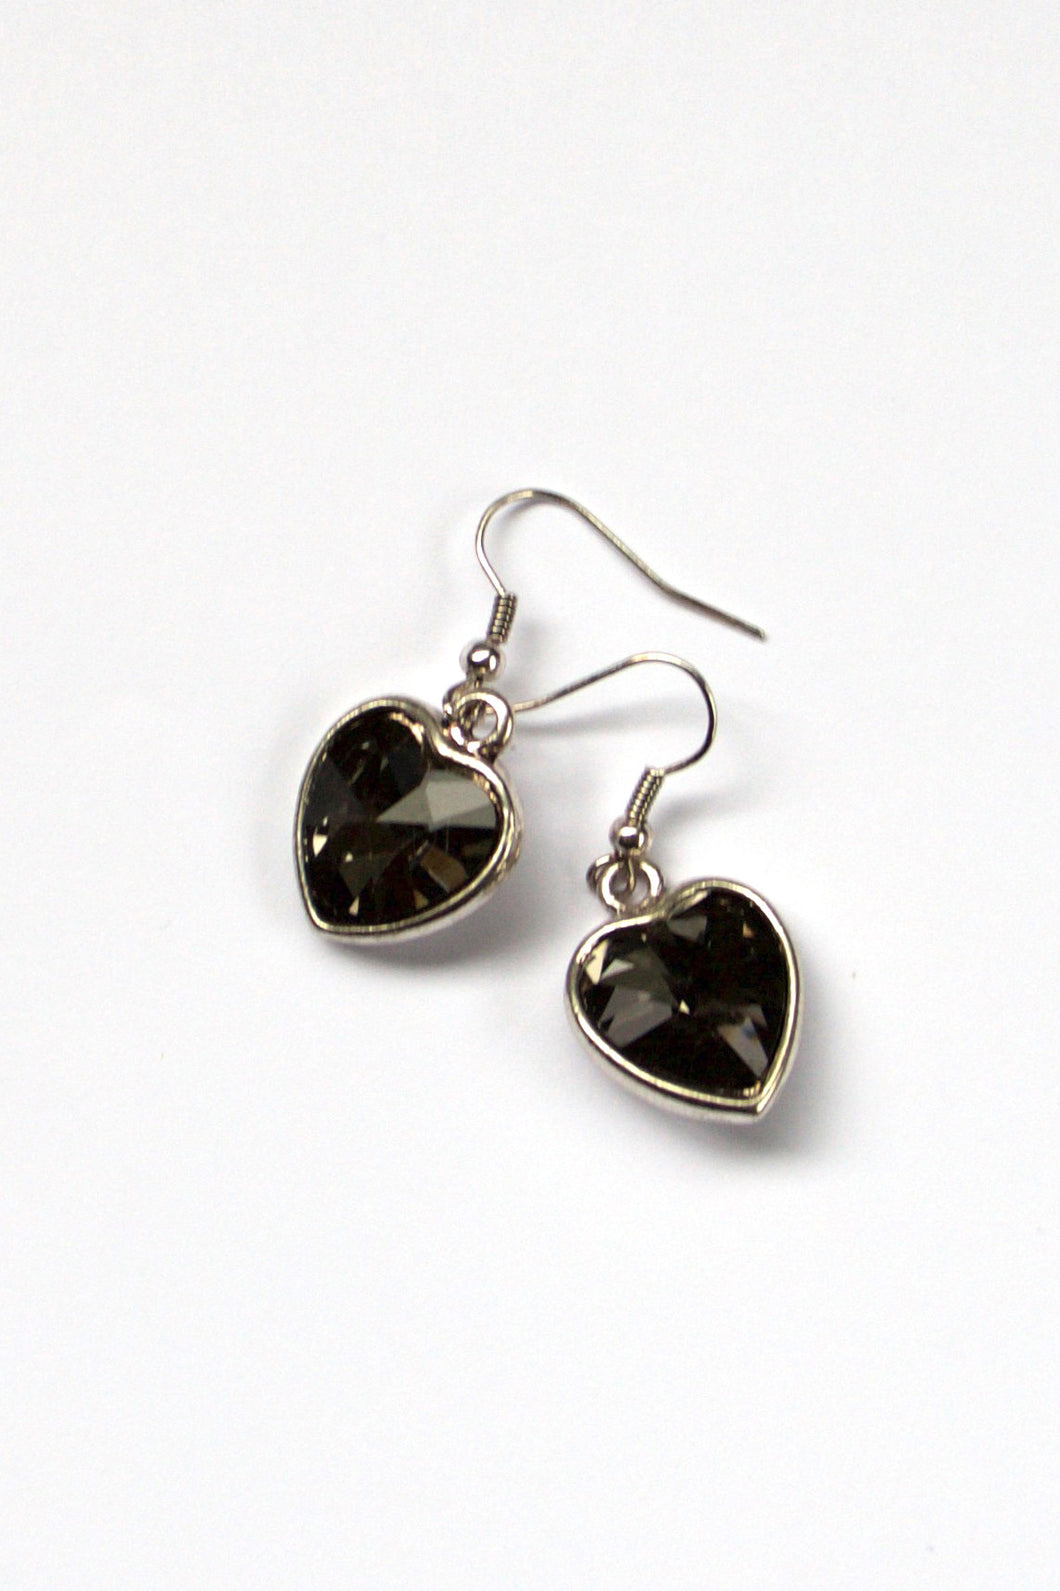 ER1301 - 15 Earrings